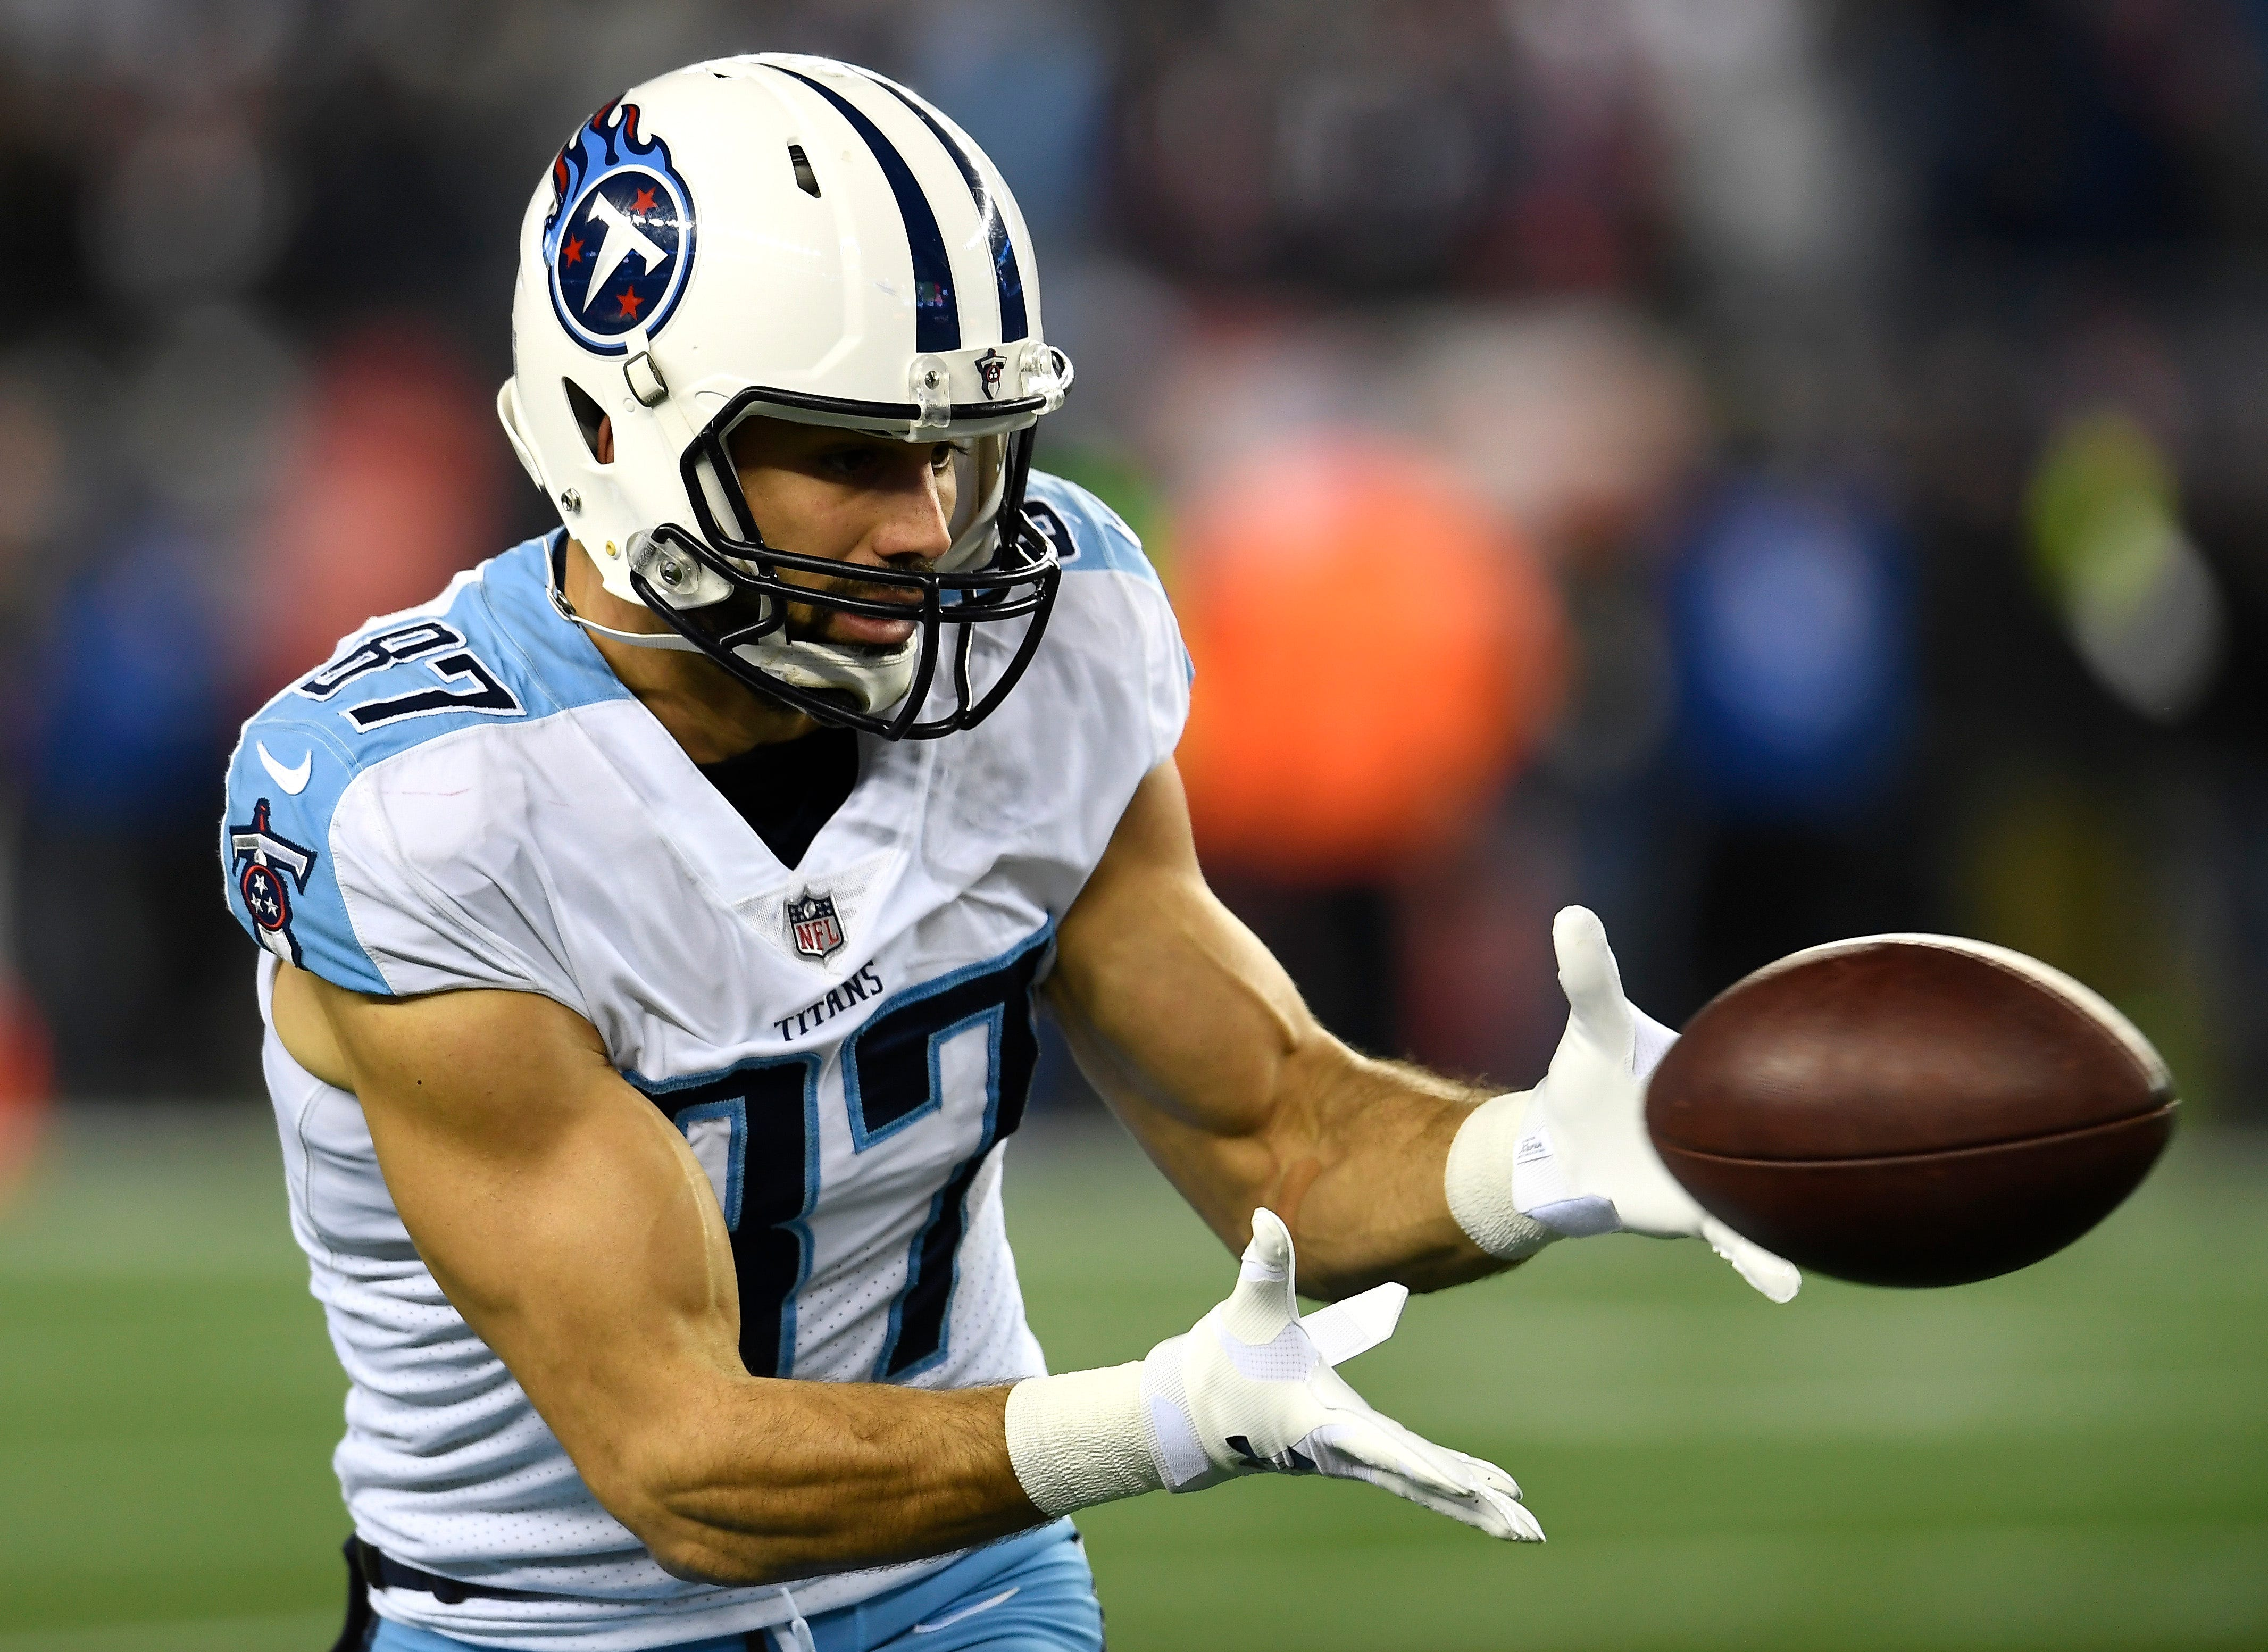 Eric Decker becomes latest wide receiver to join Patriots, per reports